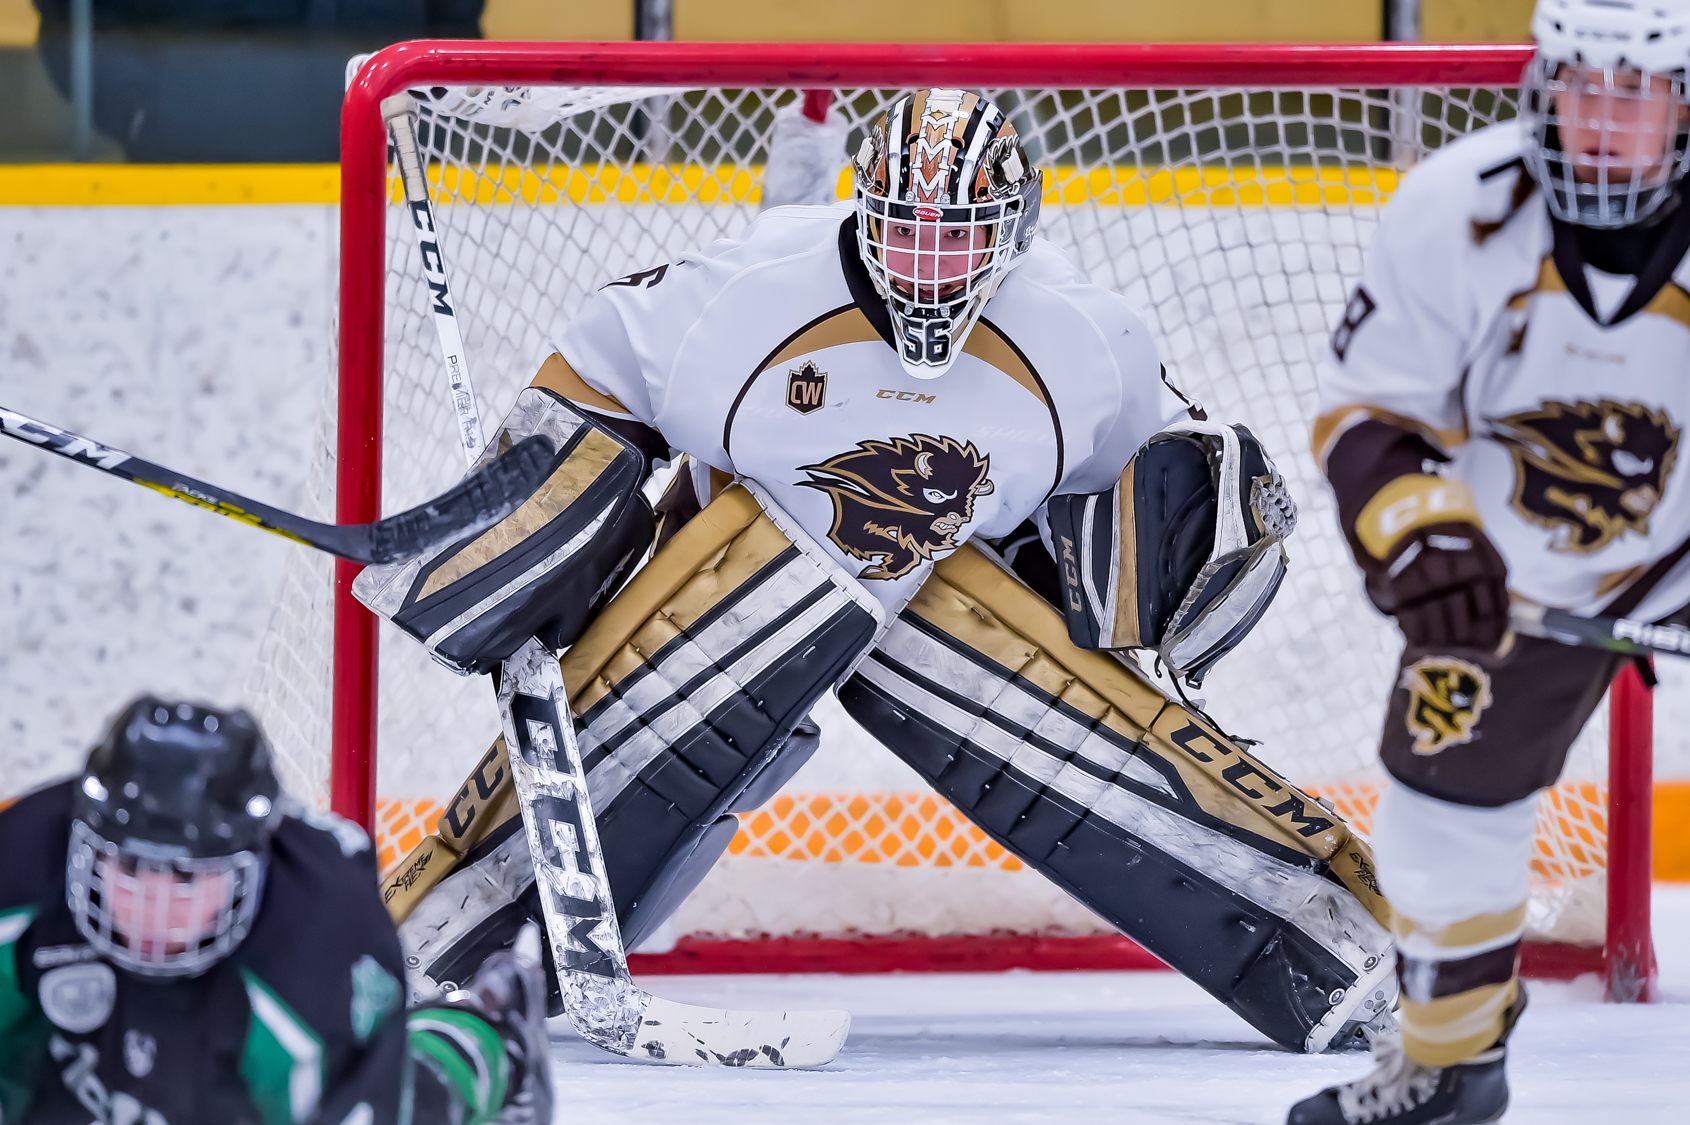 5215875e55b 1 Bison women s hockey team host No. 2 Alberta in Canada West semifinal  best-of-three playoff series on February 23-25 weekend held at Wayne  Fleming Arena